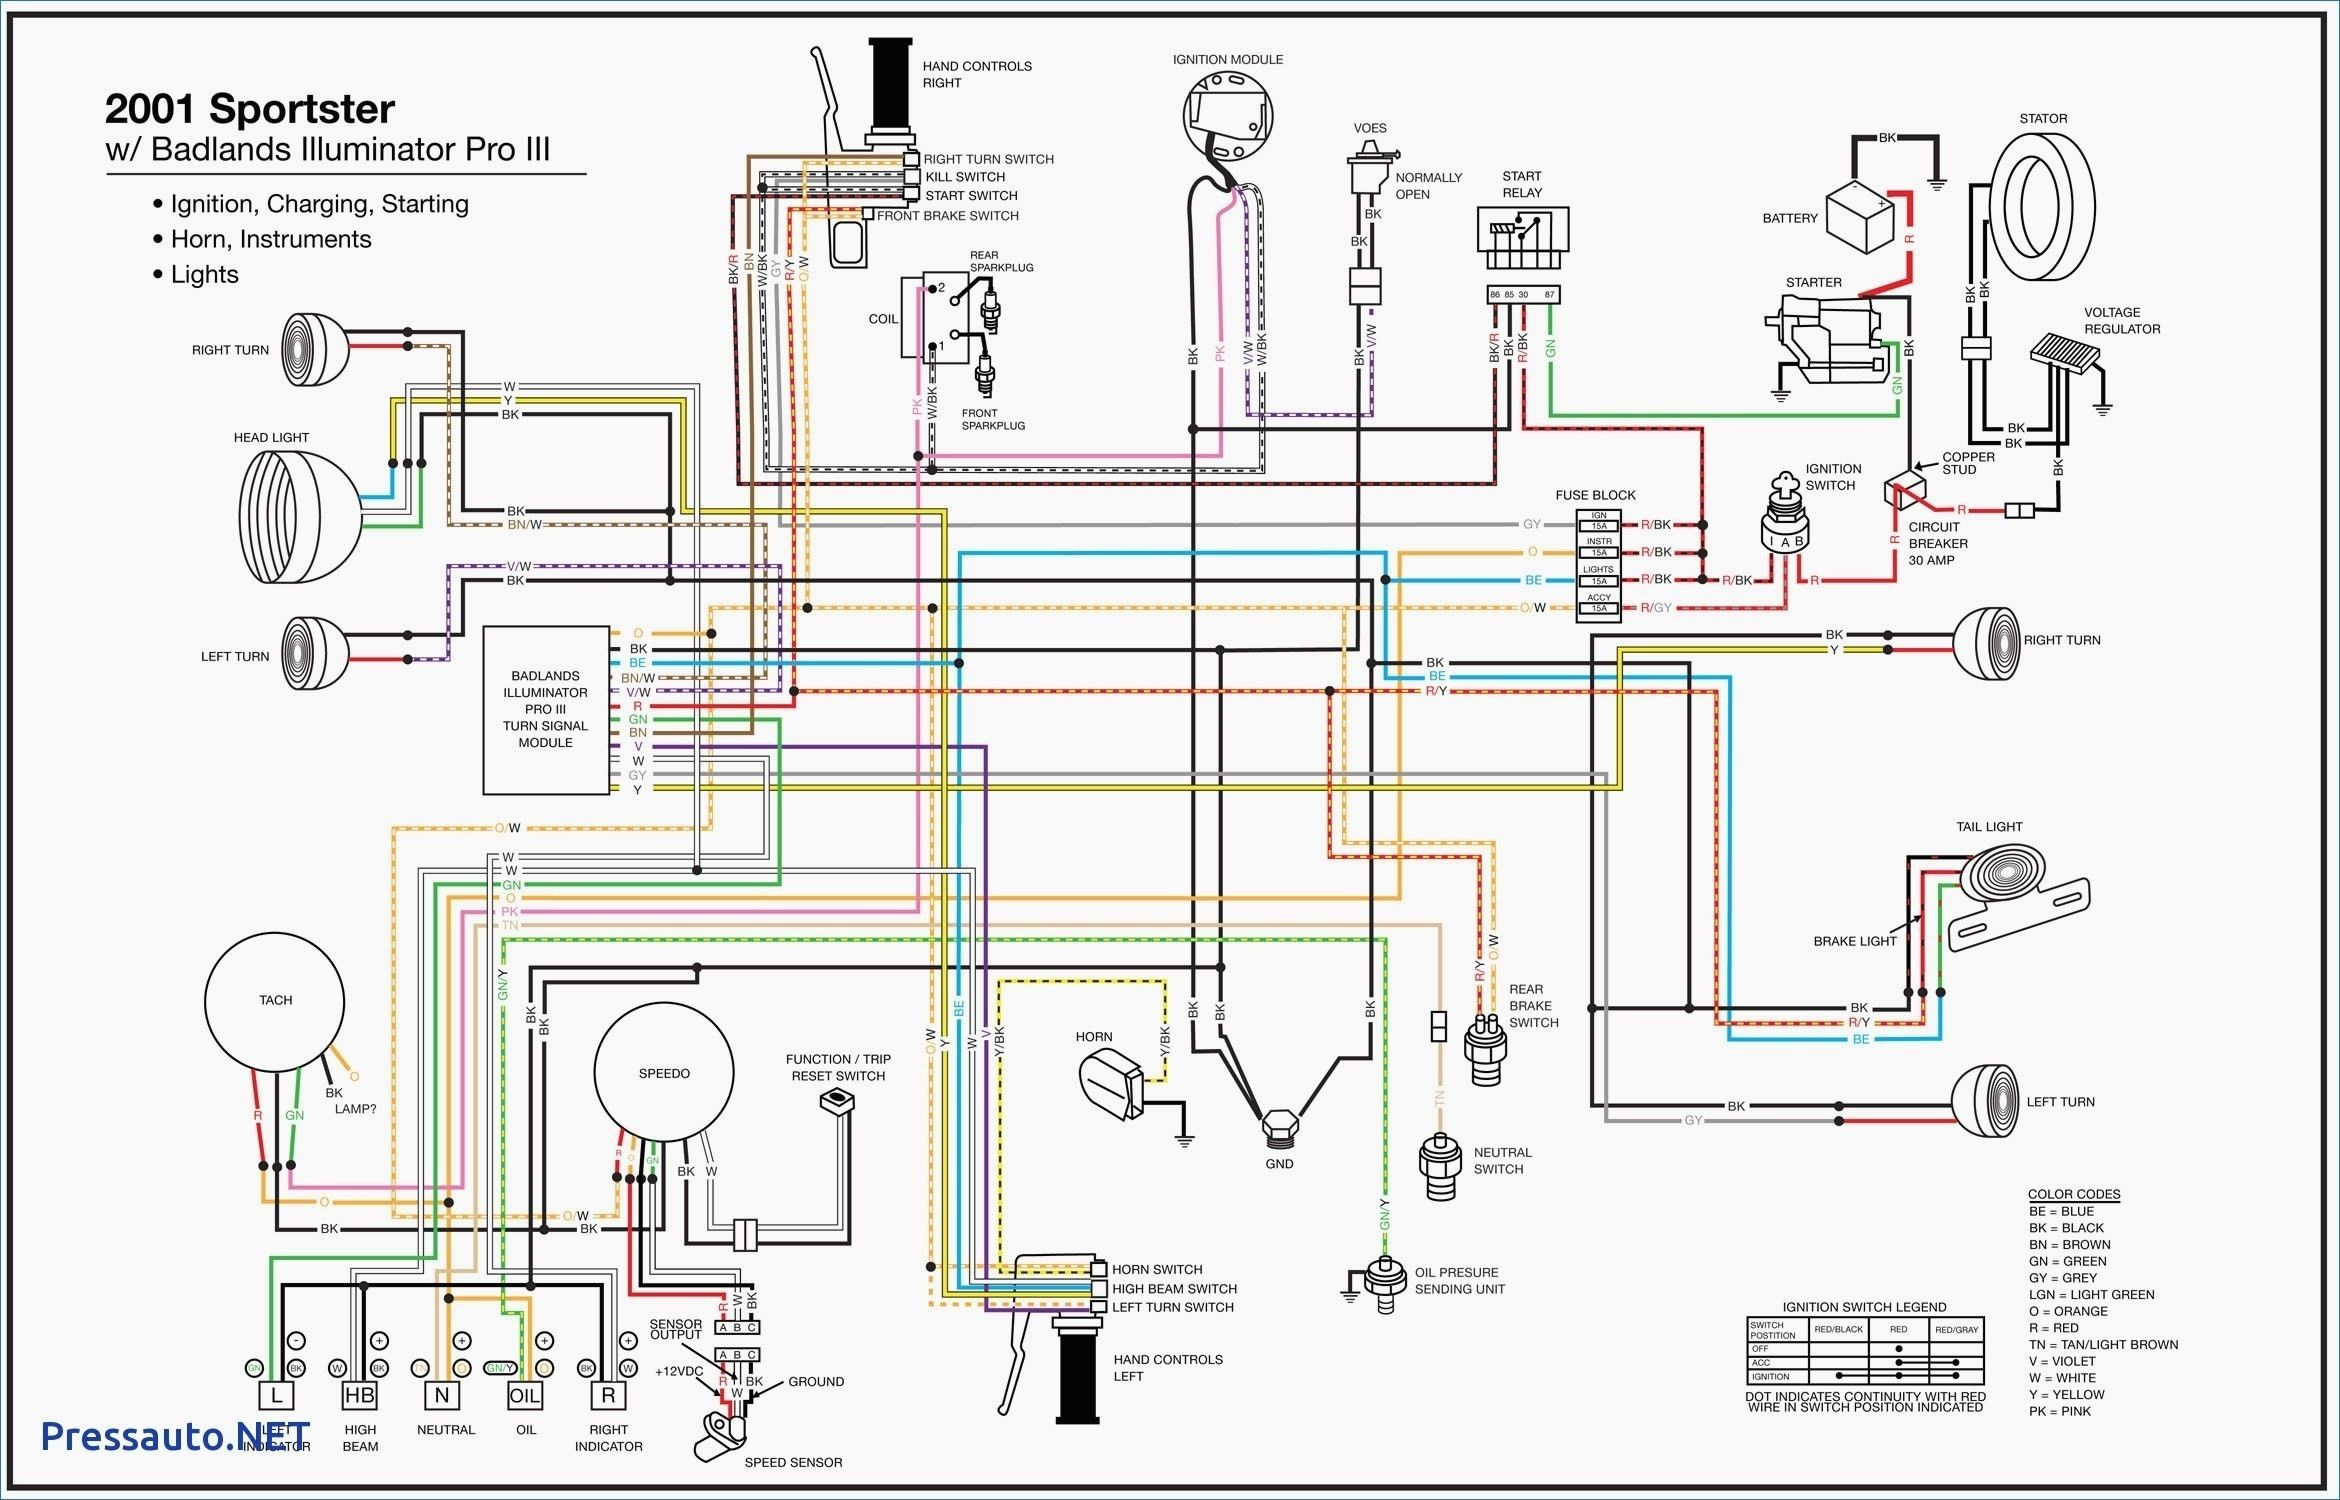 Diagrams Digramssample Diagramimages Wiringdiagramsample Wiringdiagram Check More At Https Nostoc Co Motorcycle Wiring Harley Davidson Sportster Bmw E46